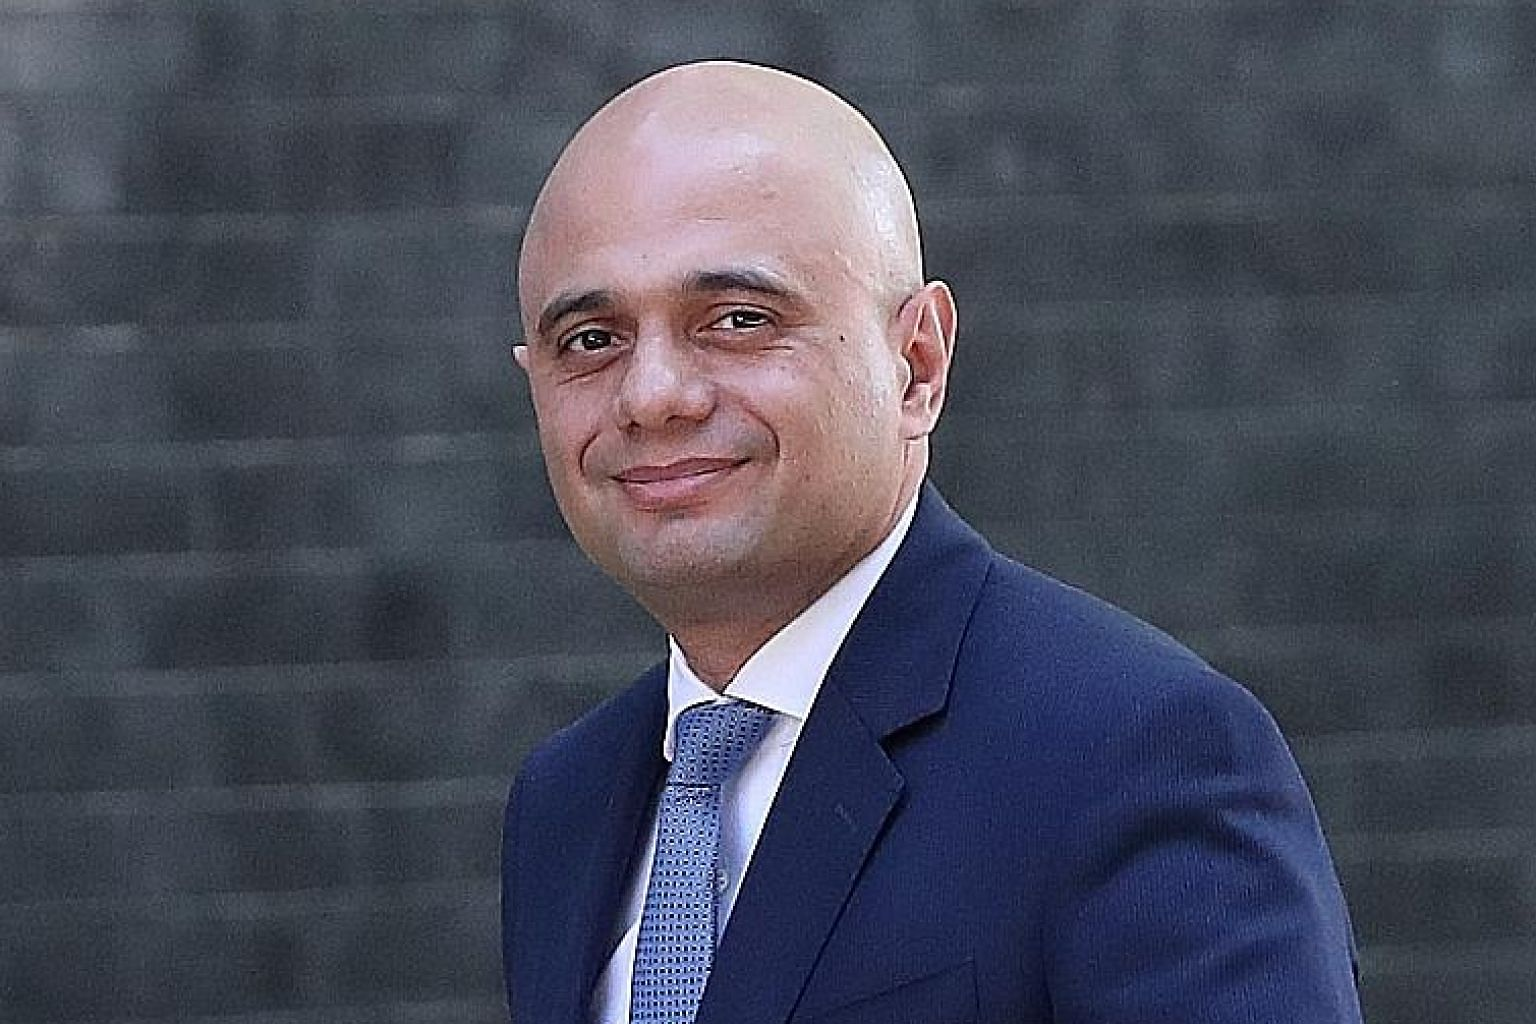 Mr Sajid Javid ignored teachers who dissuaded him from going to university, and while he could have gone to Oxford or Cambridge, he opted to study at Exeter University.